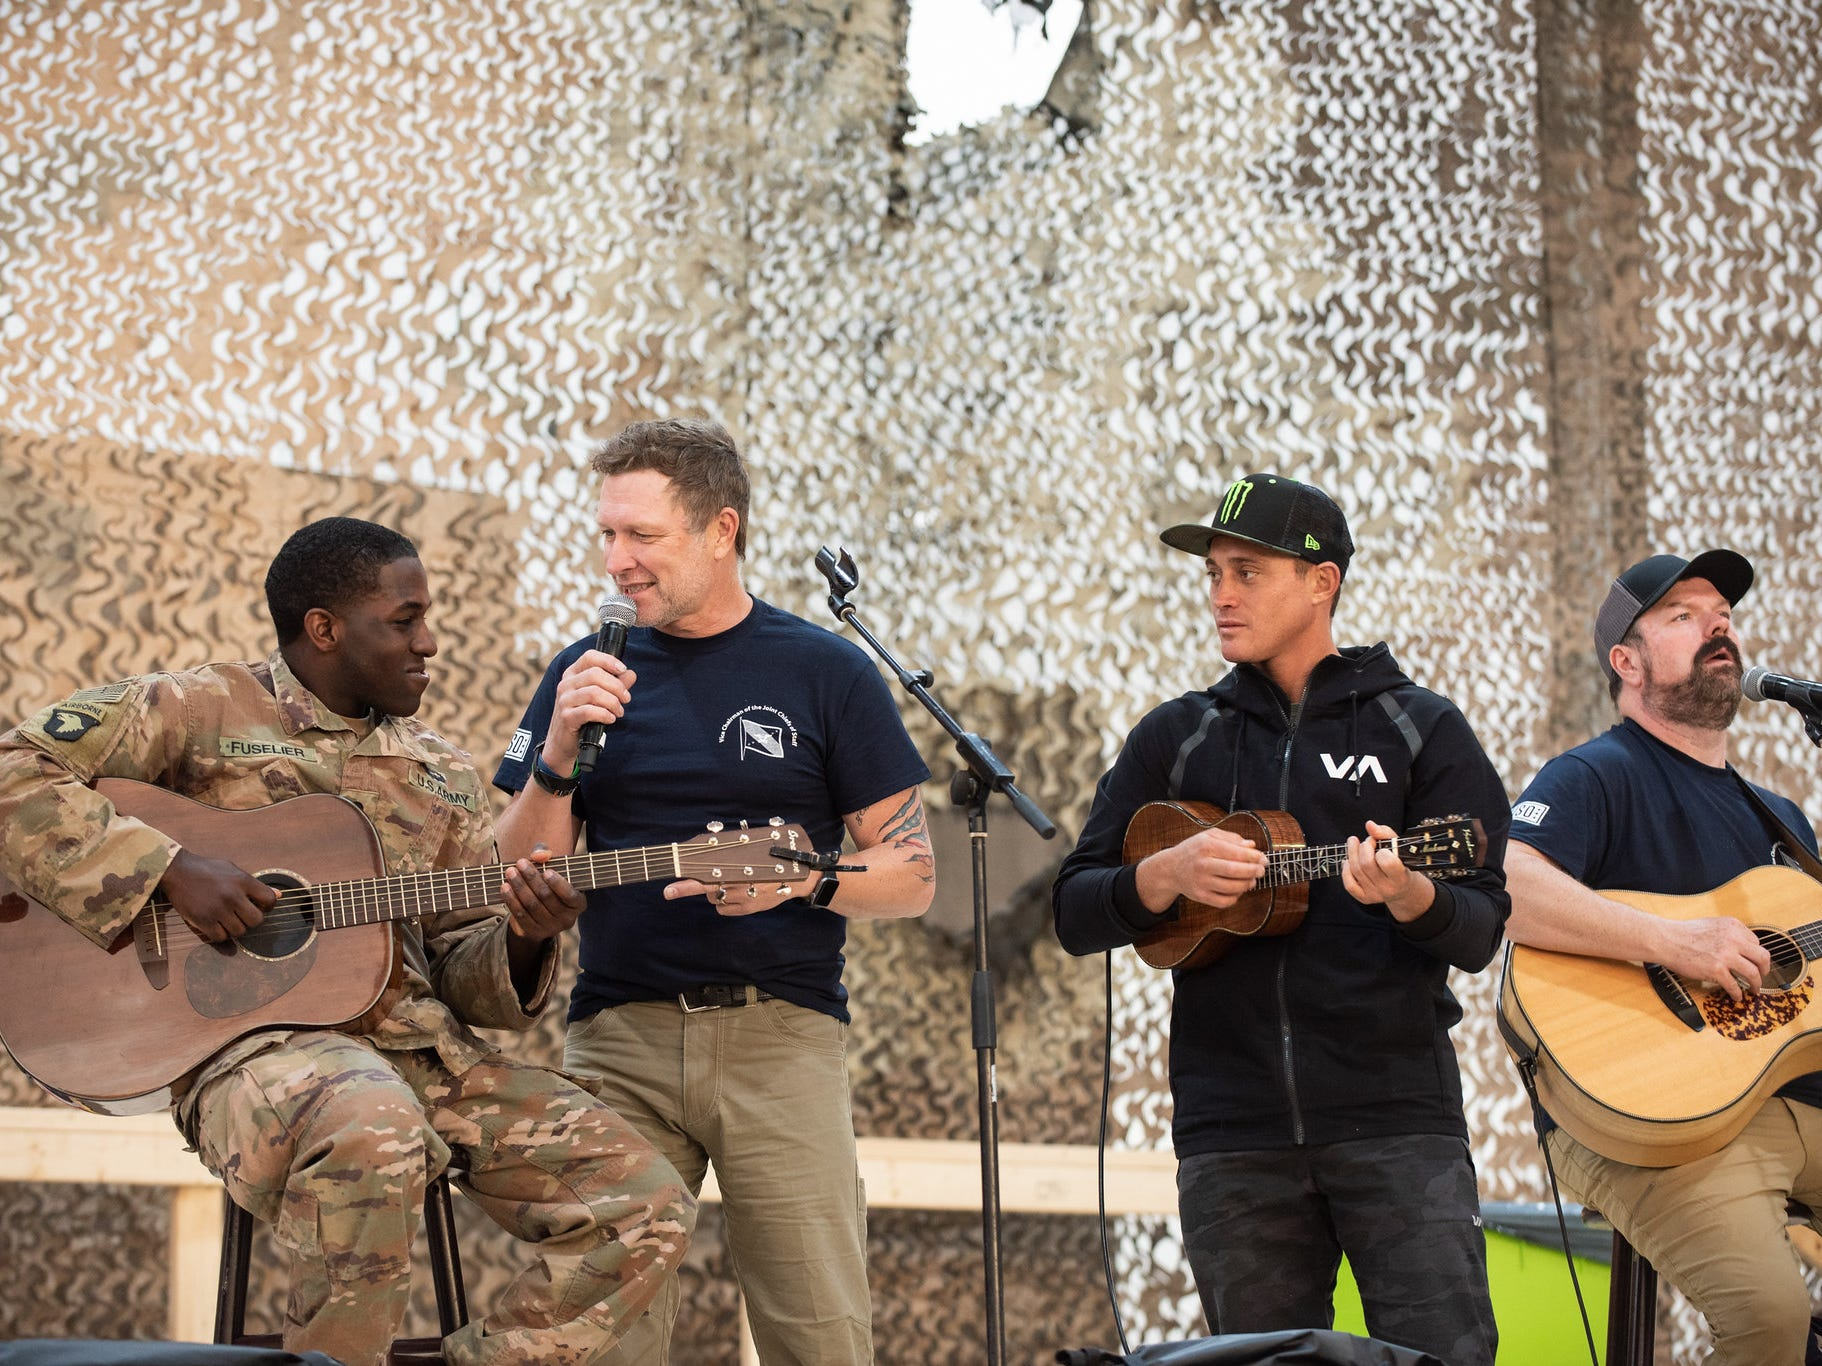 Country music artist Craig Morgan, with microphone, talks with a military member guitar player during a USO Show at Al Asad Airbase, Iraq; the sixth stop on the annual Vice Chairman's USO Tour, April 2.